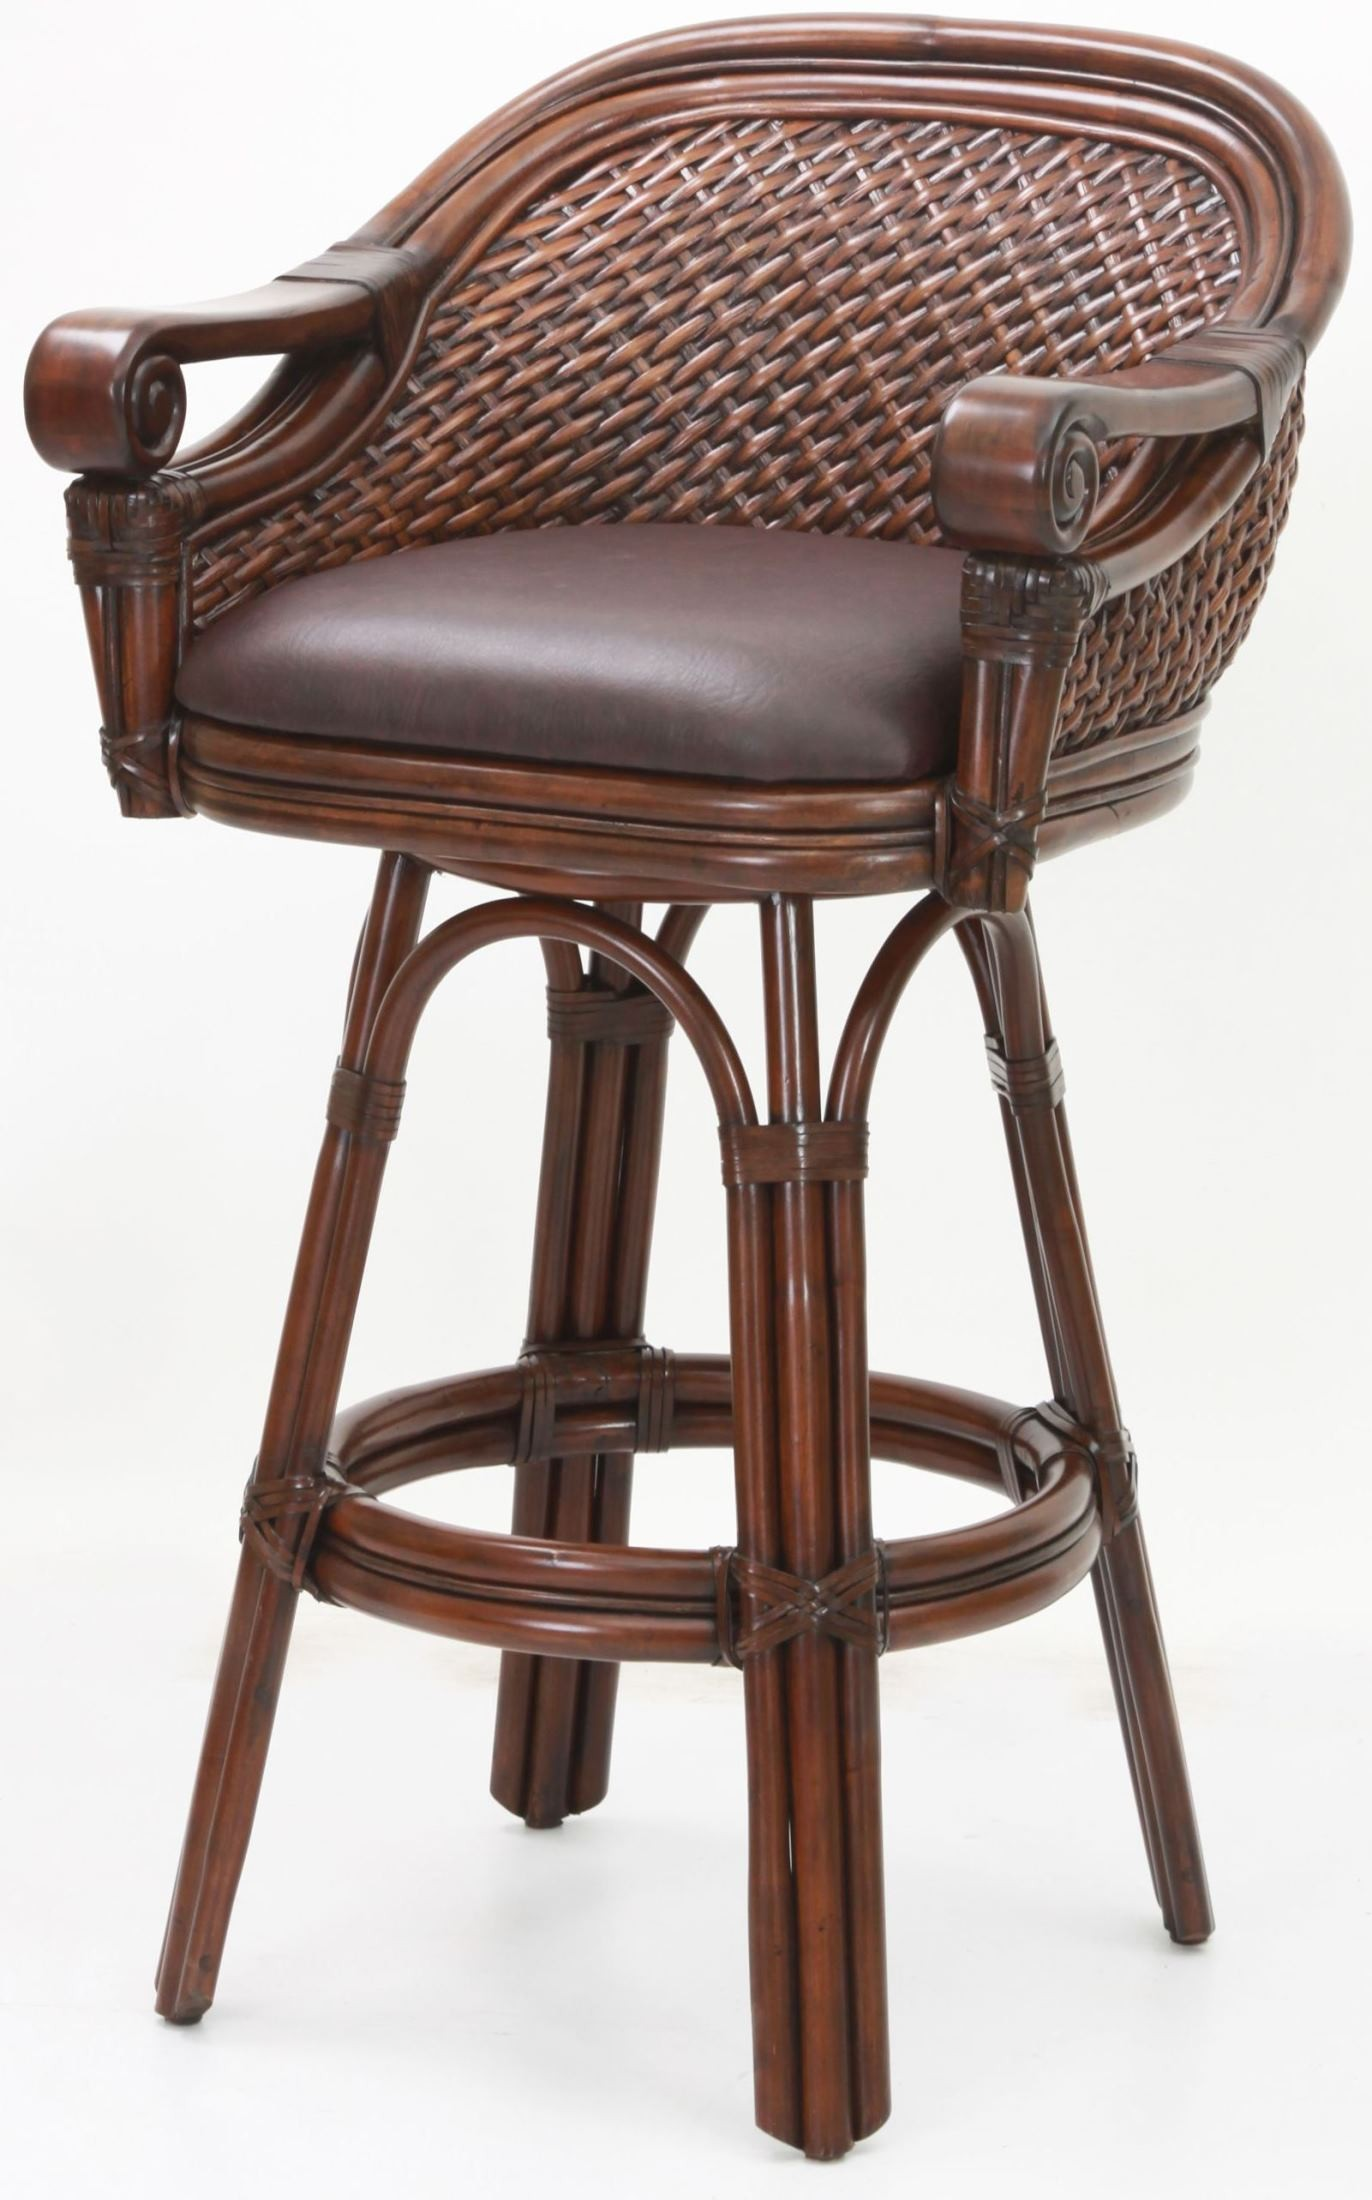 Decorative Arm 26 Quot Rattan Frame Stool From American